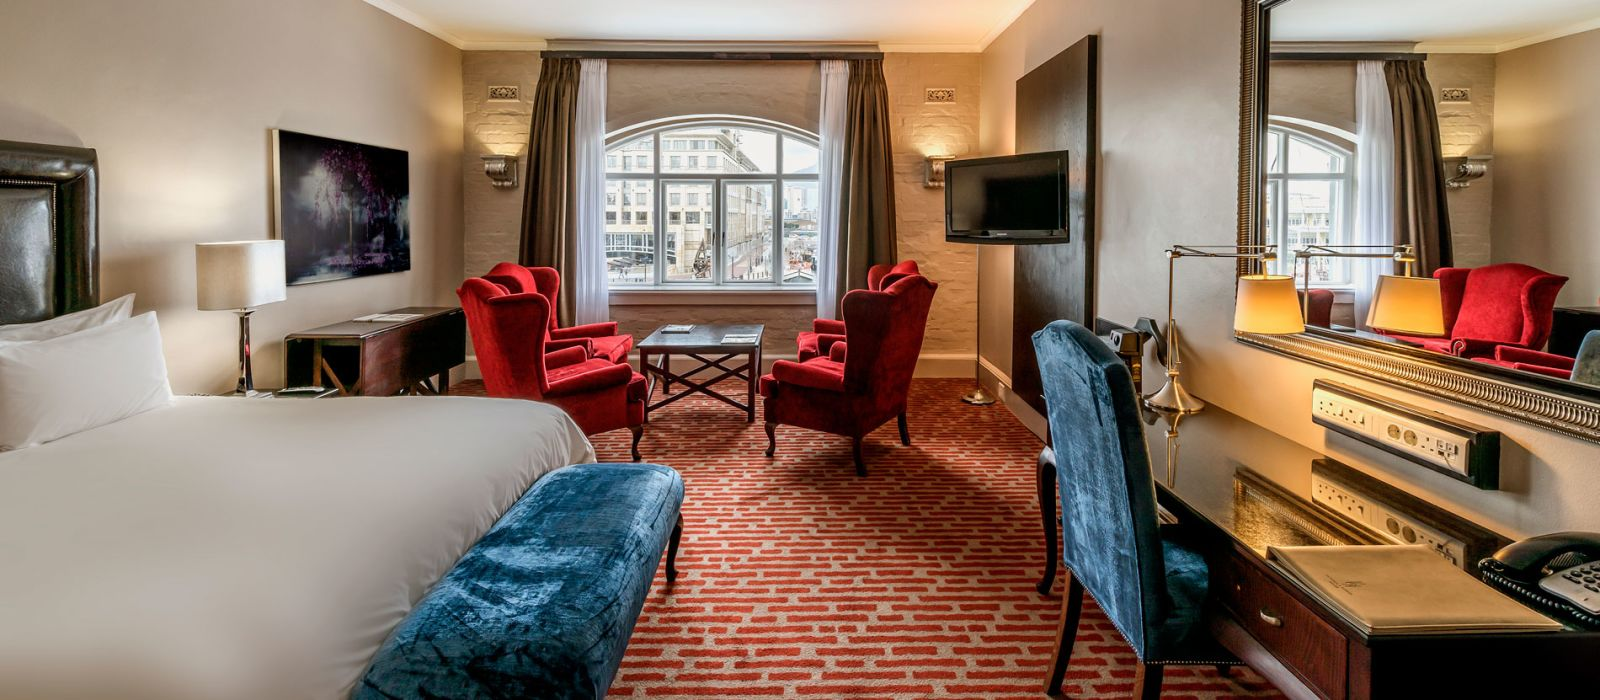 Hotel Victoria & Alfred -Newmark s South Africa